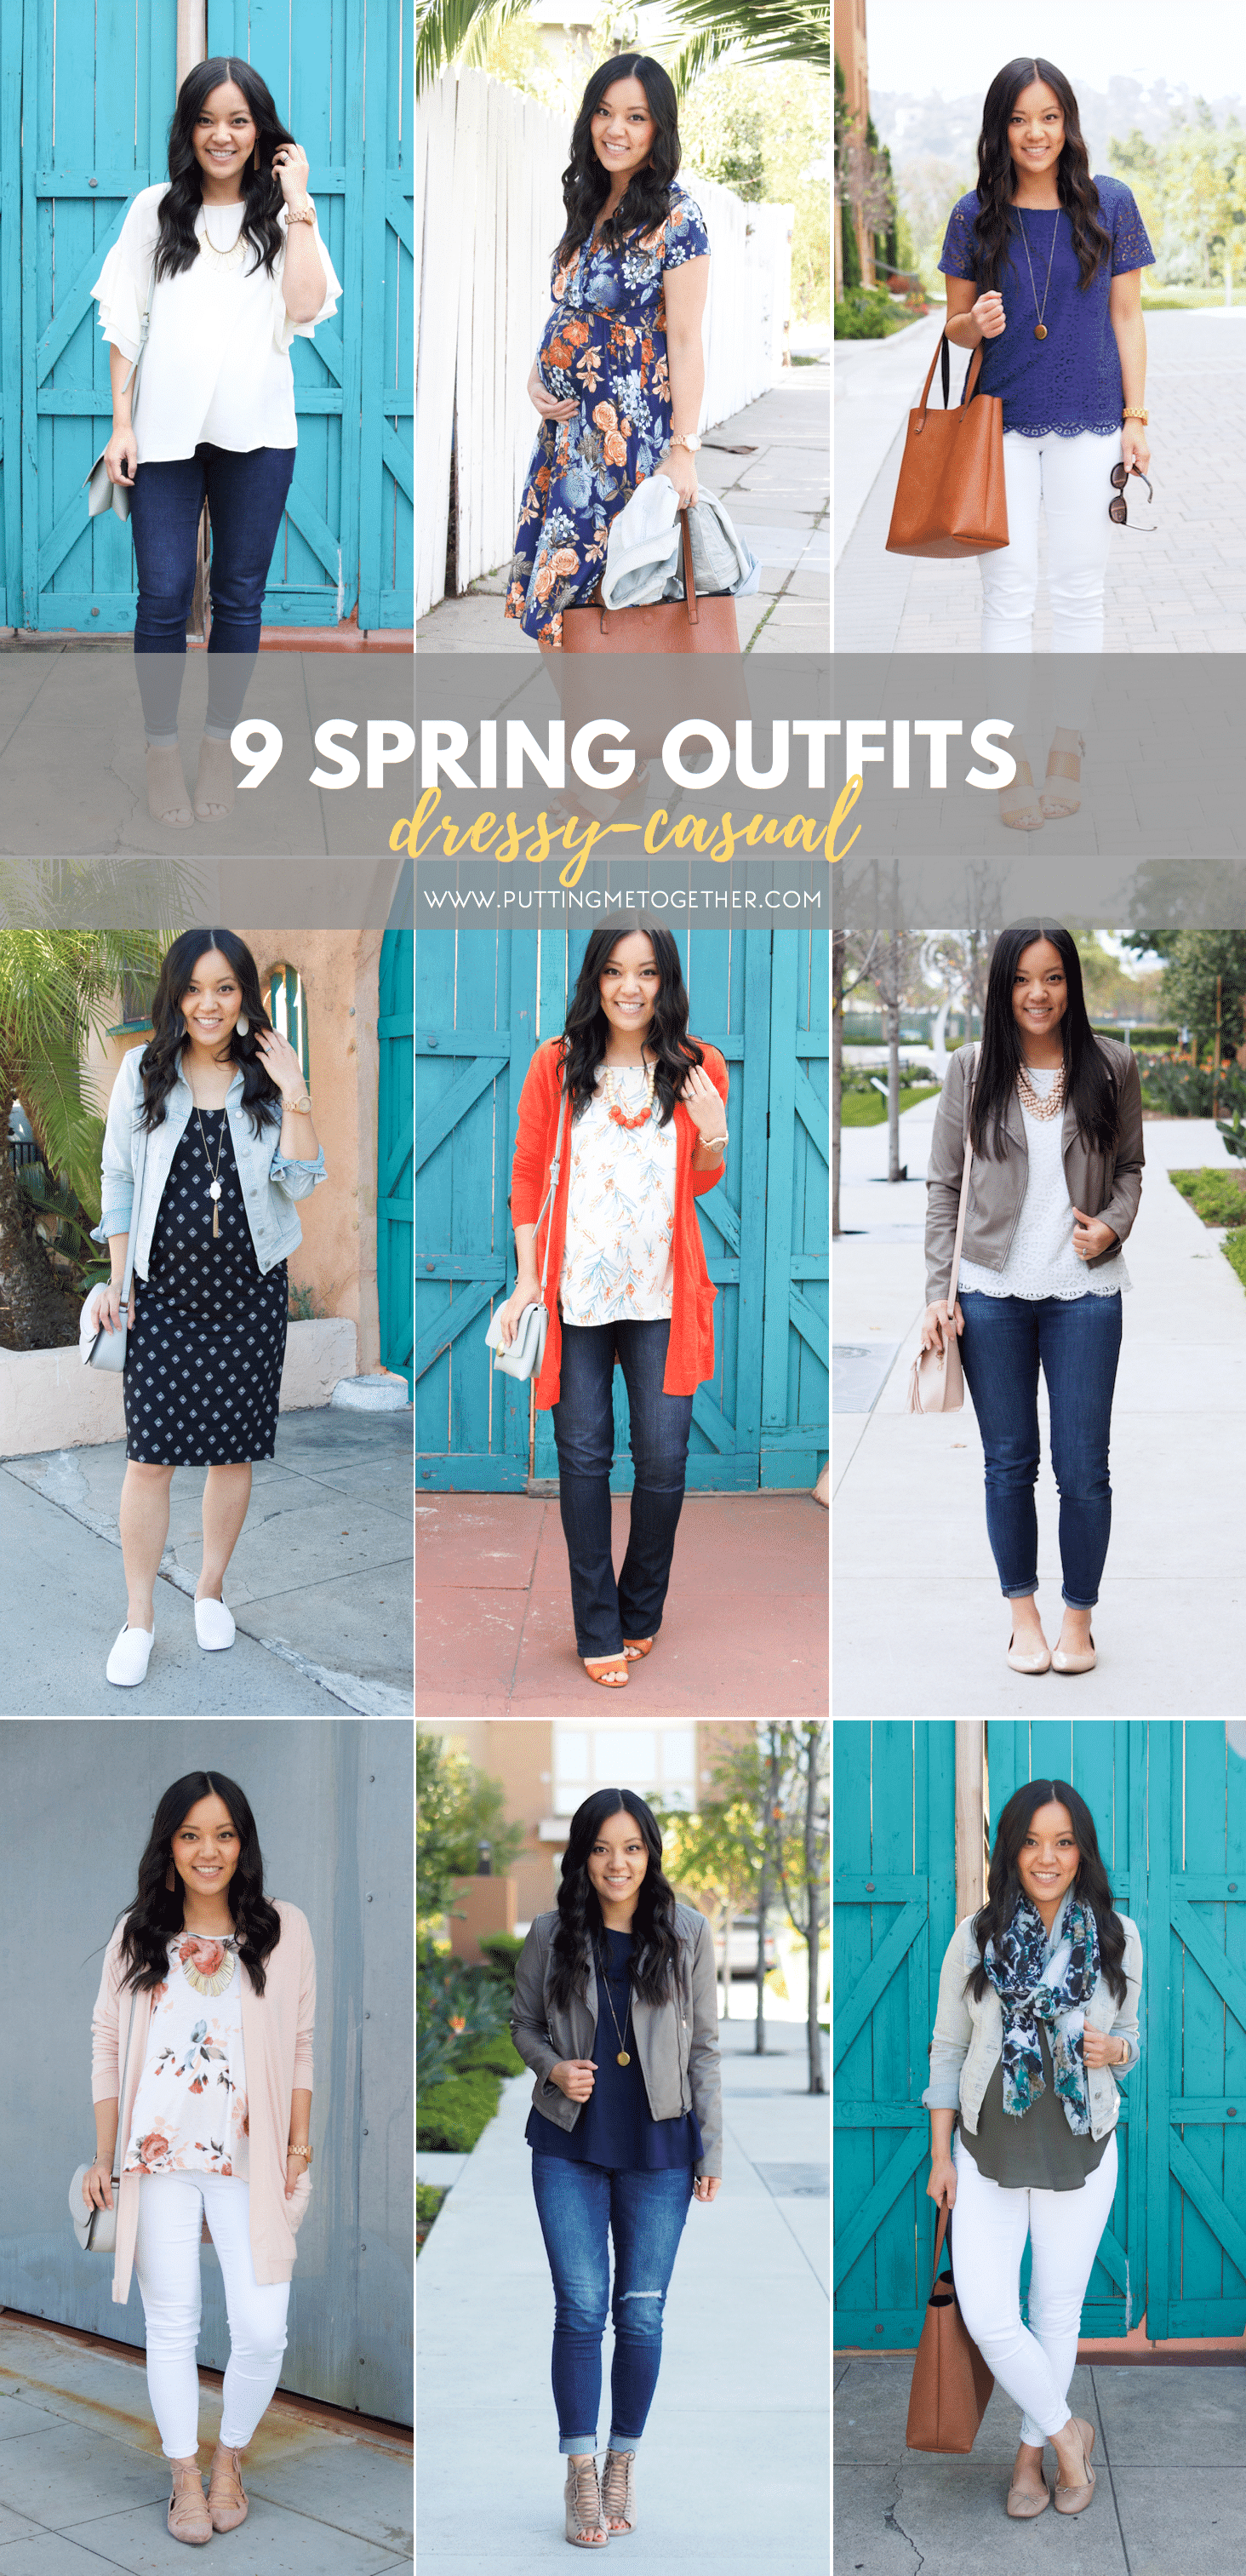 72b6352bf0b 9 Dressy Casual Spring Outfits  Out with Friends